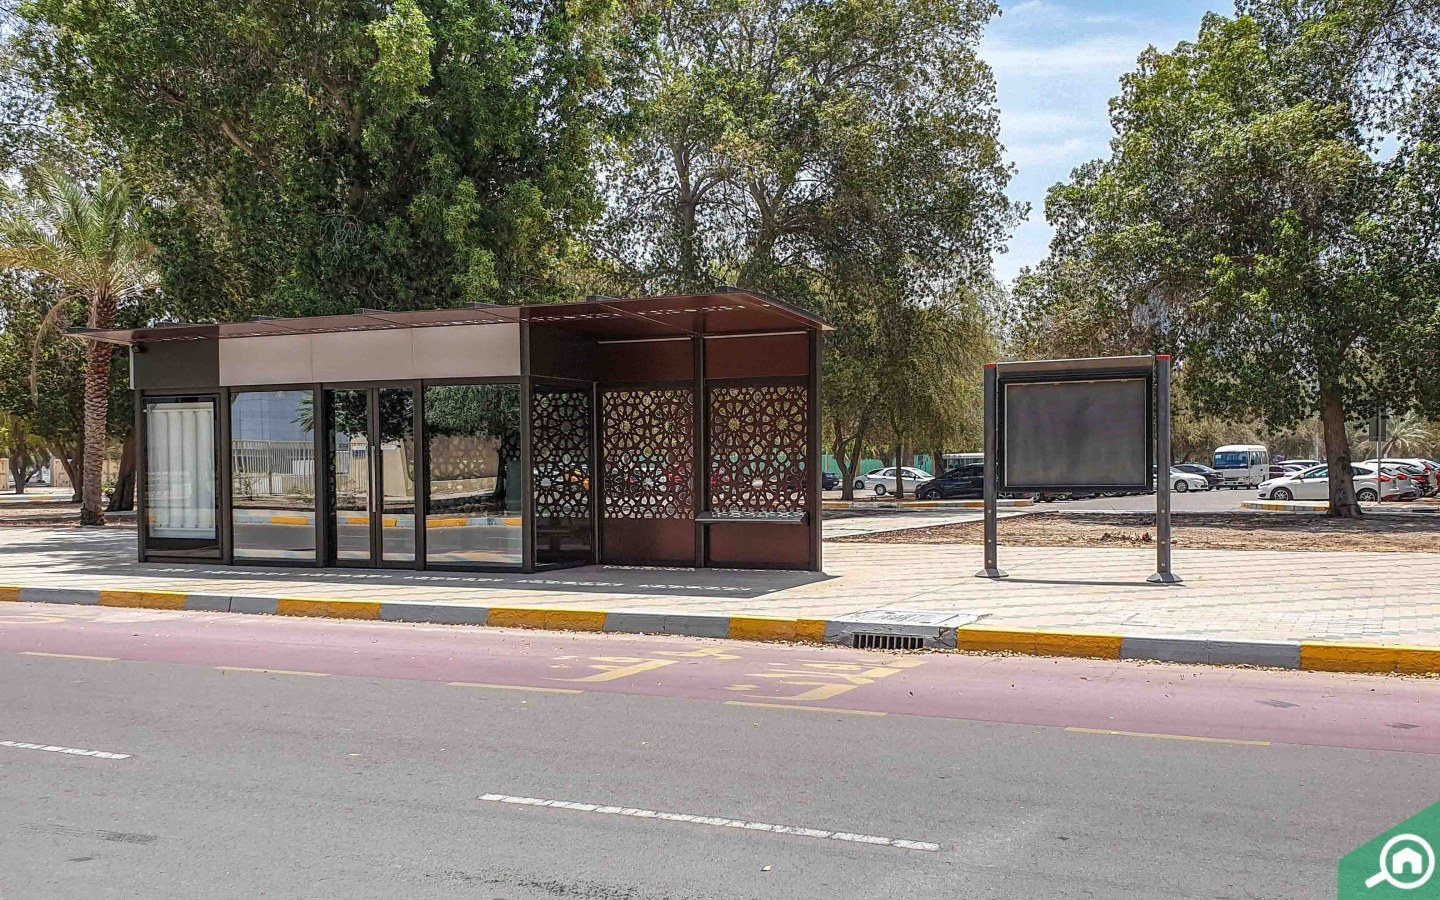 Bus stop in Zayed Sports City